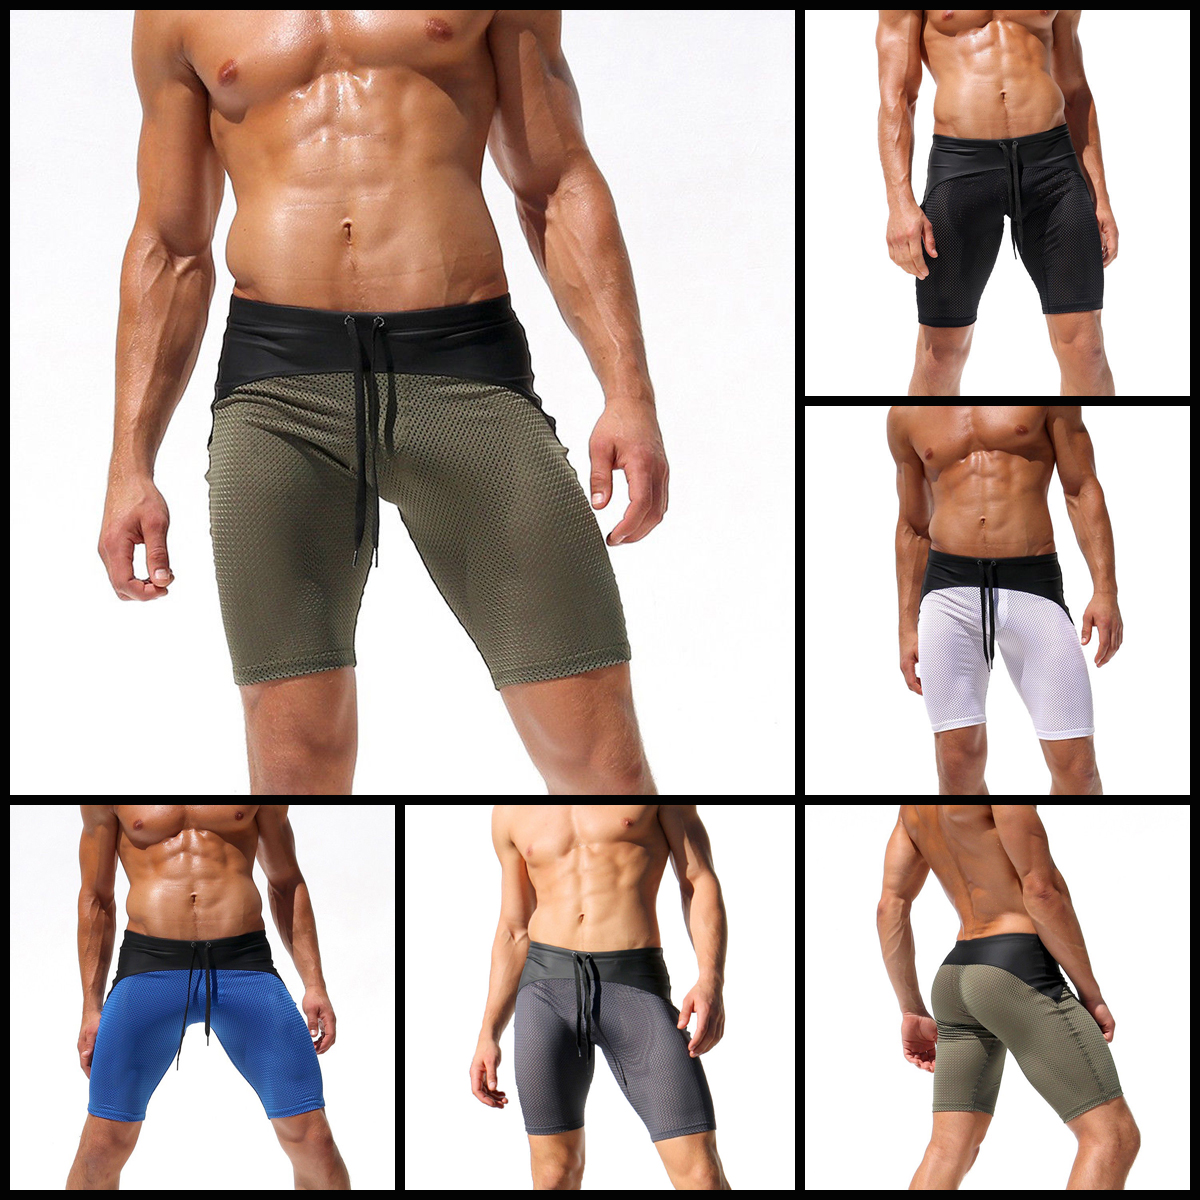 9c39b3753 Details about Mens Swim Fitted Shorts Bodybuilding Workout Gym Running  Tight Lifting Shorts UK